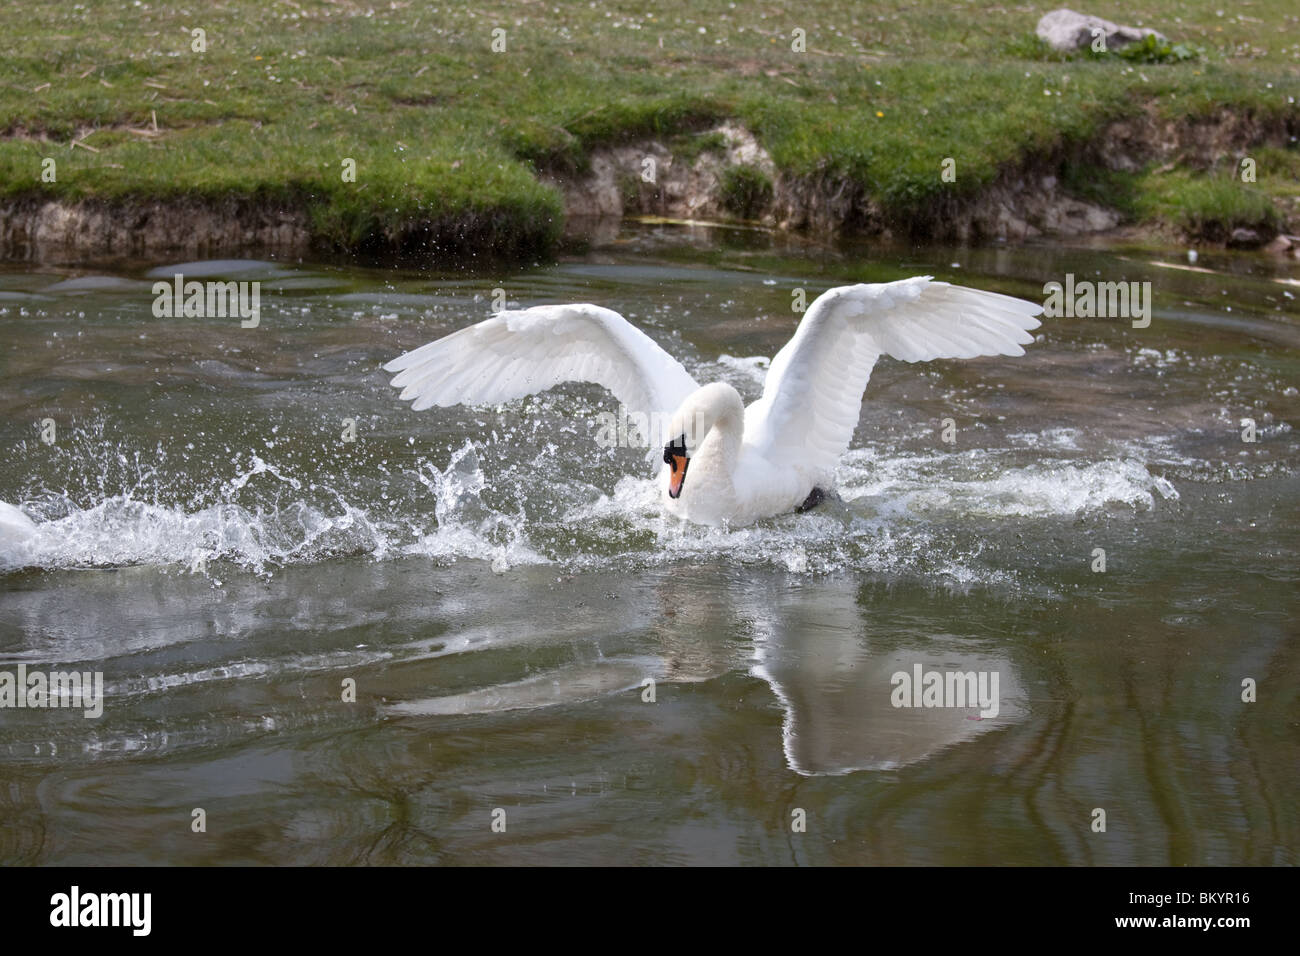 Swan in aggressive pose with spread wings warning off another swan - Stock Image